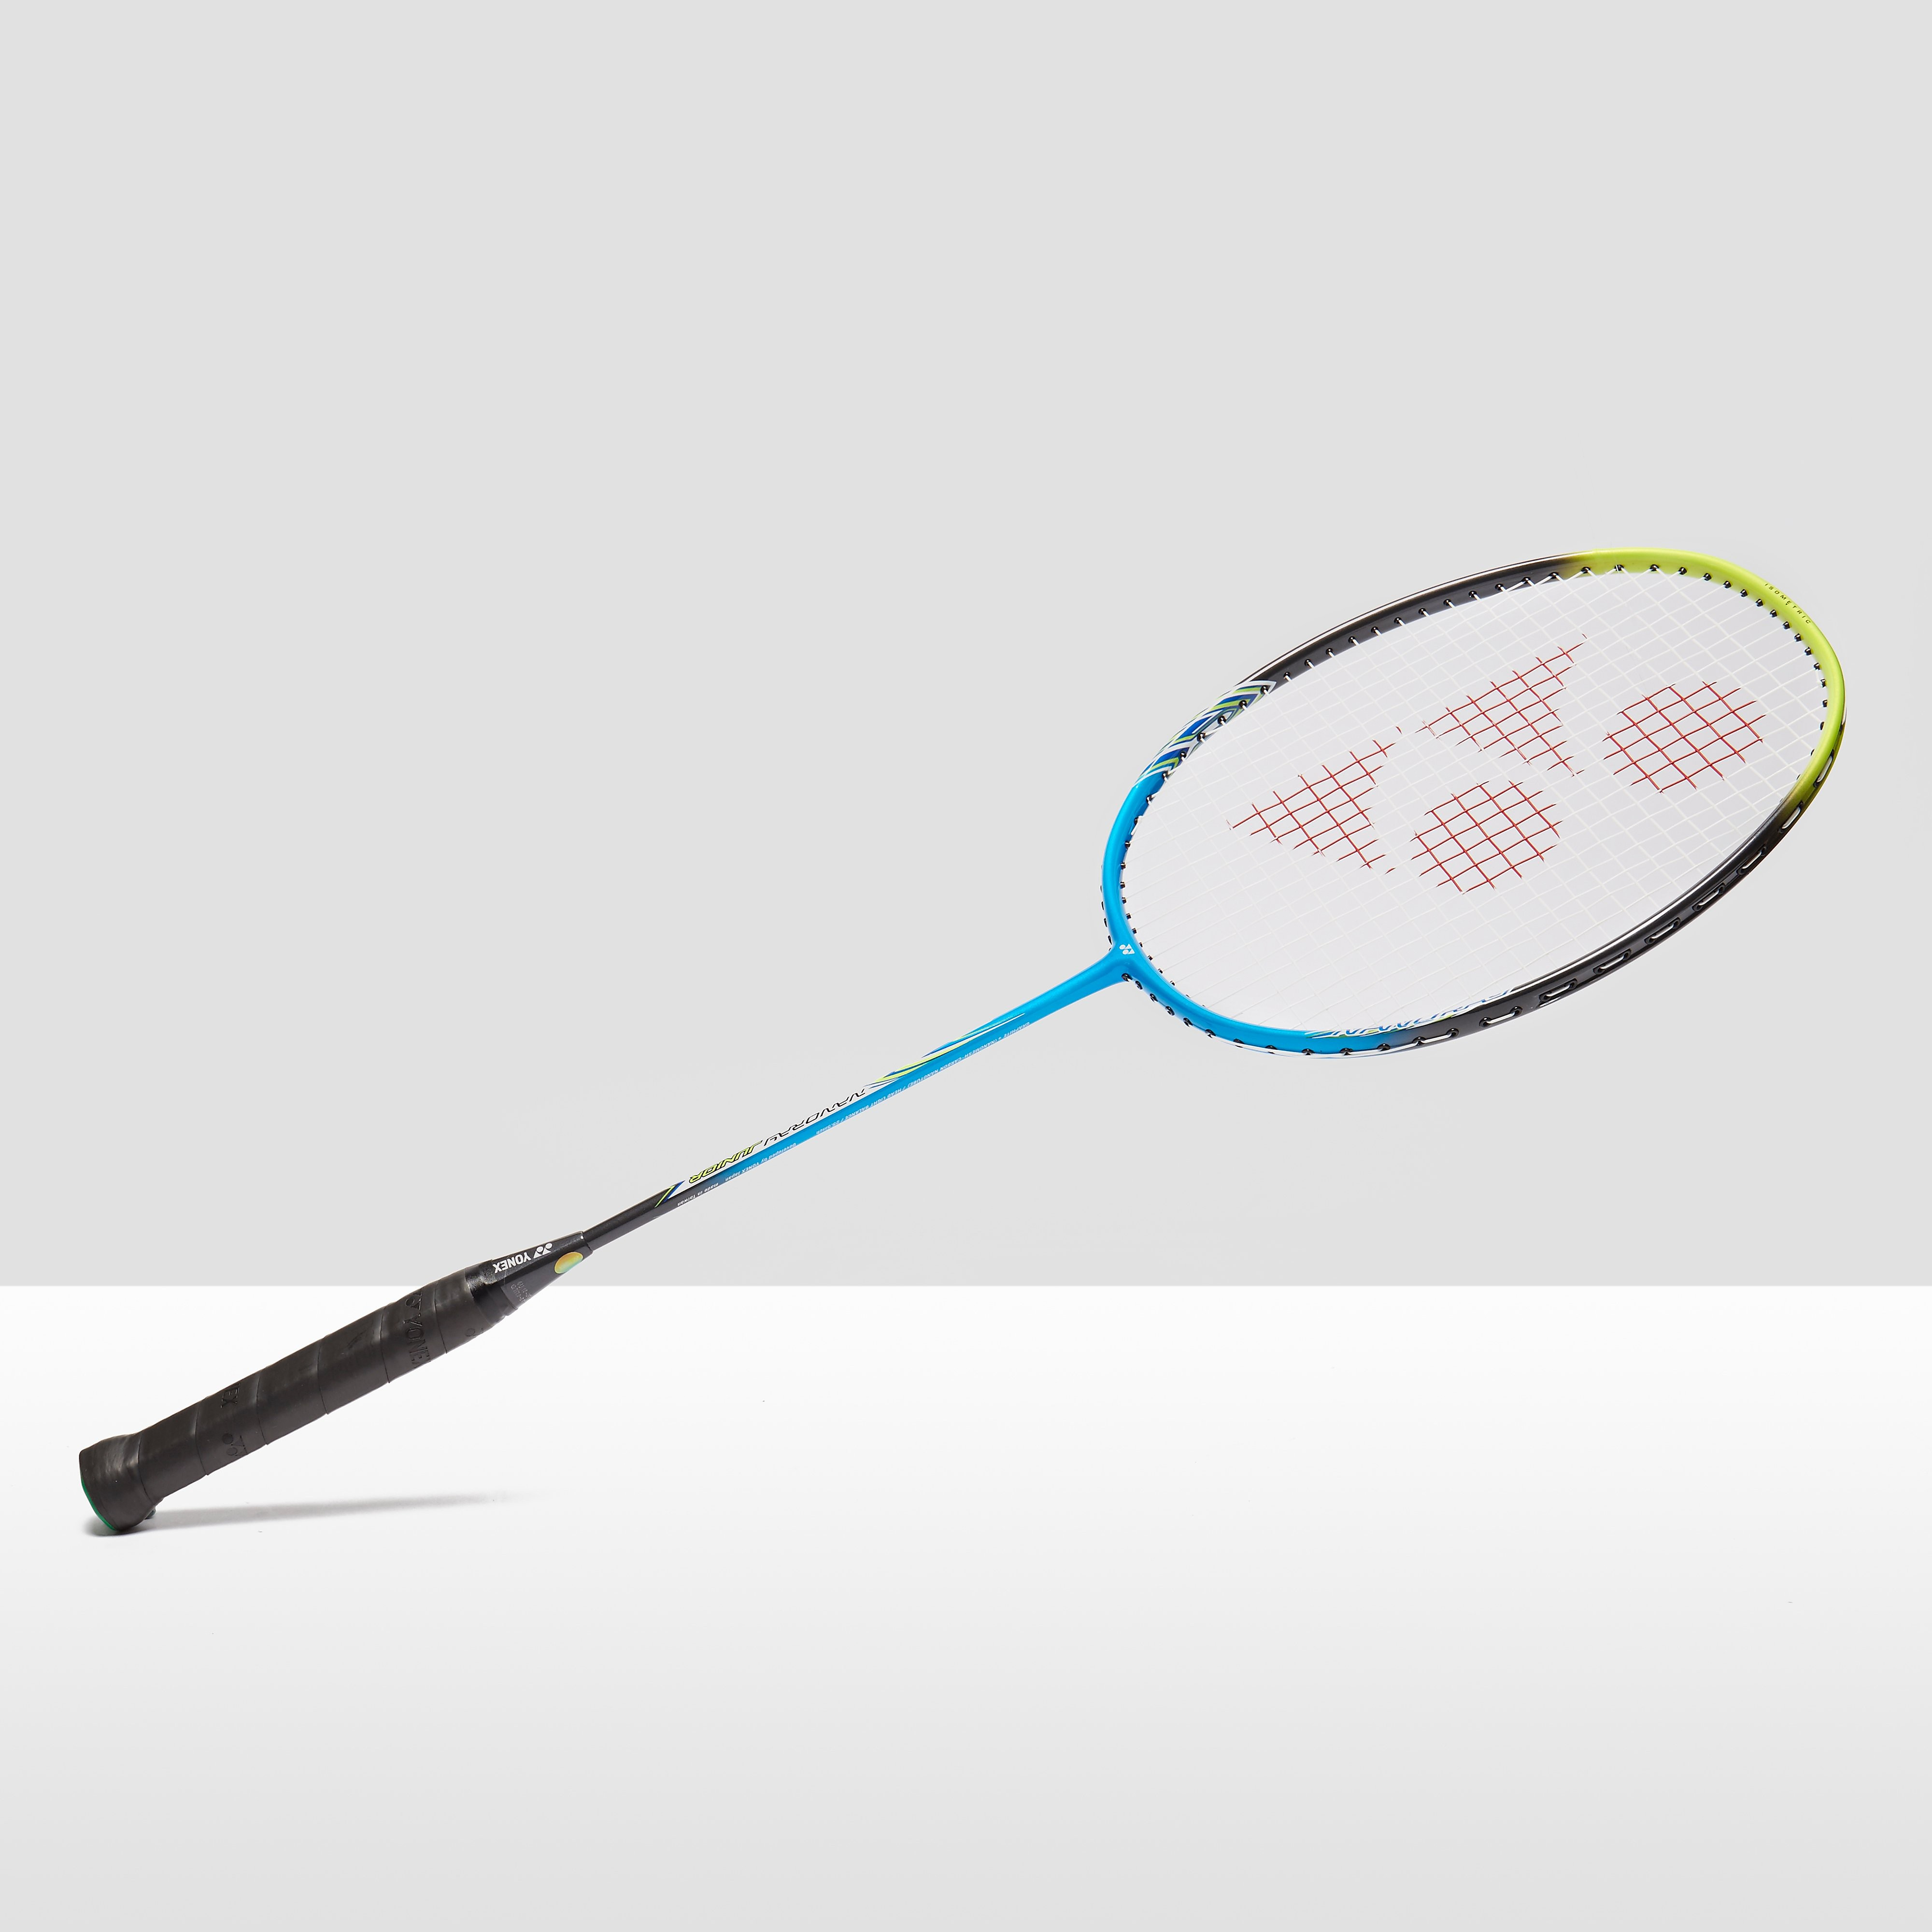 Yonex Nanoray Junior Badminton Racket